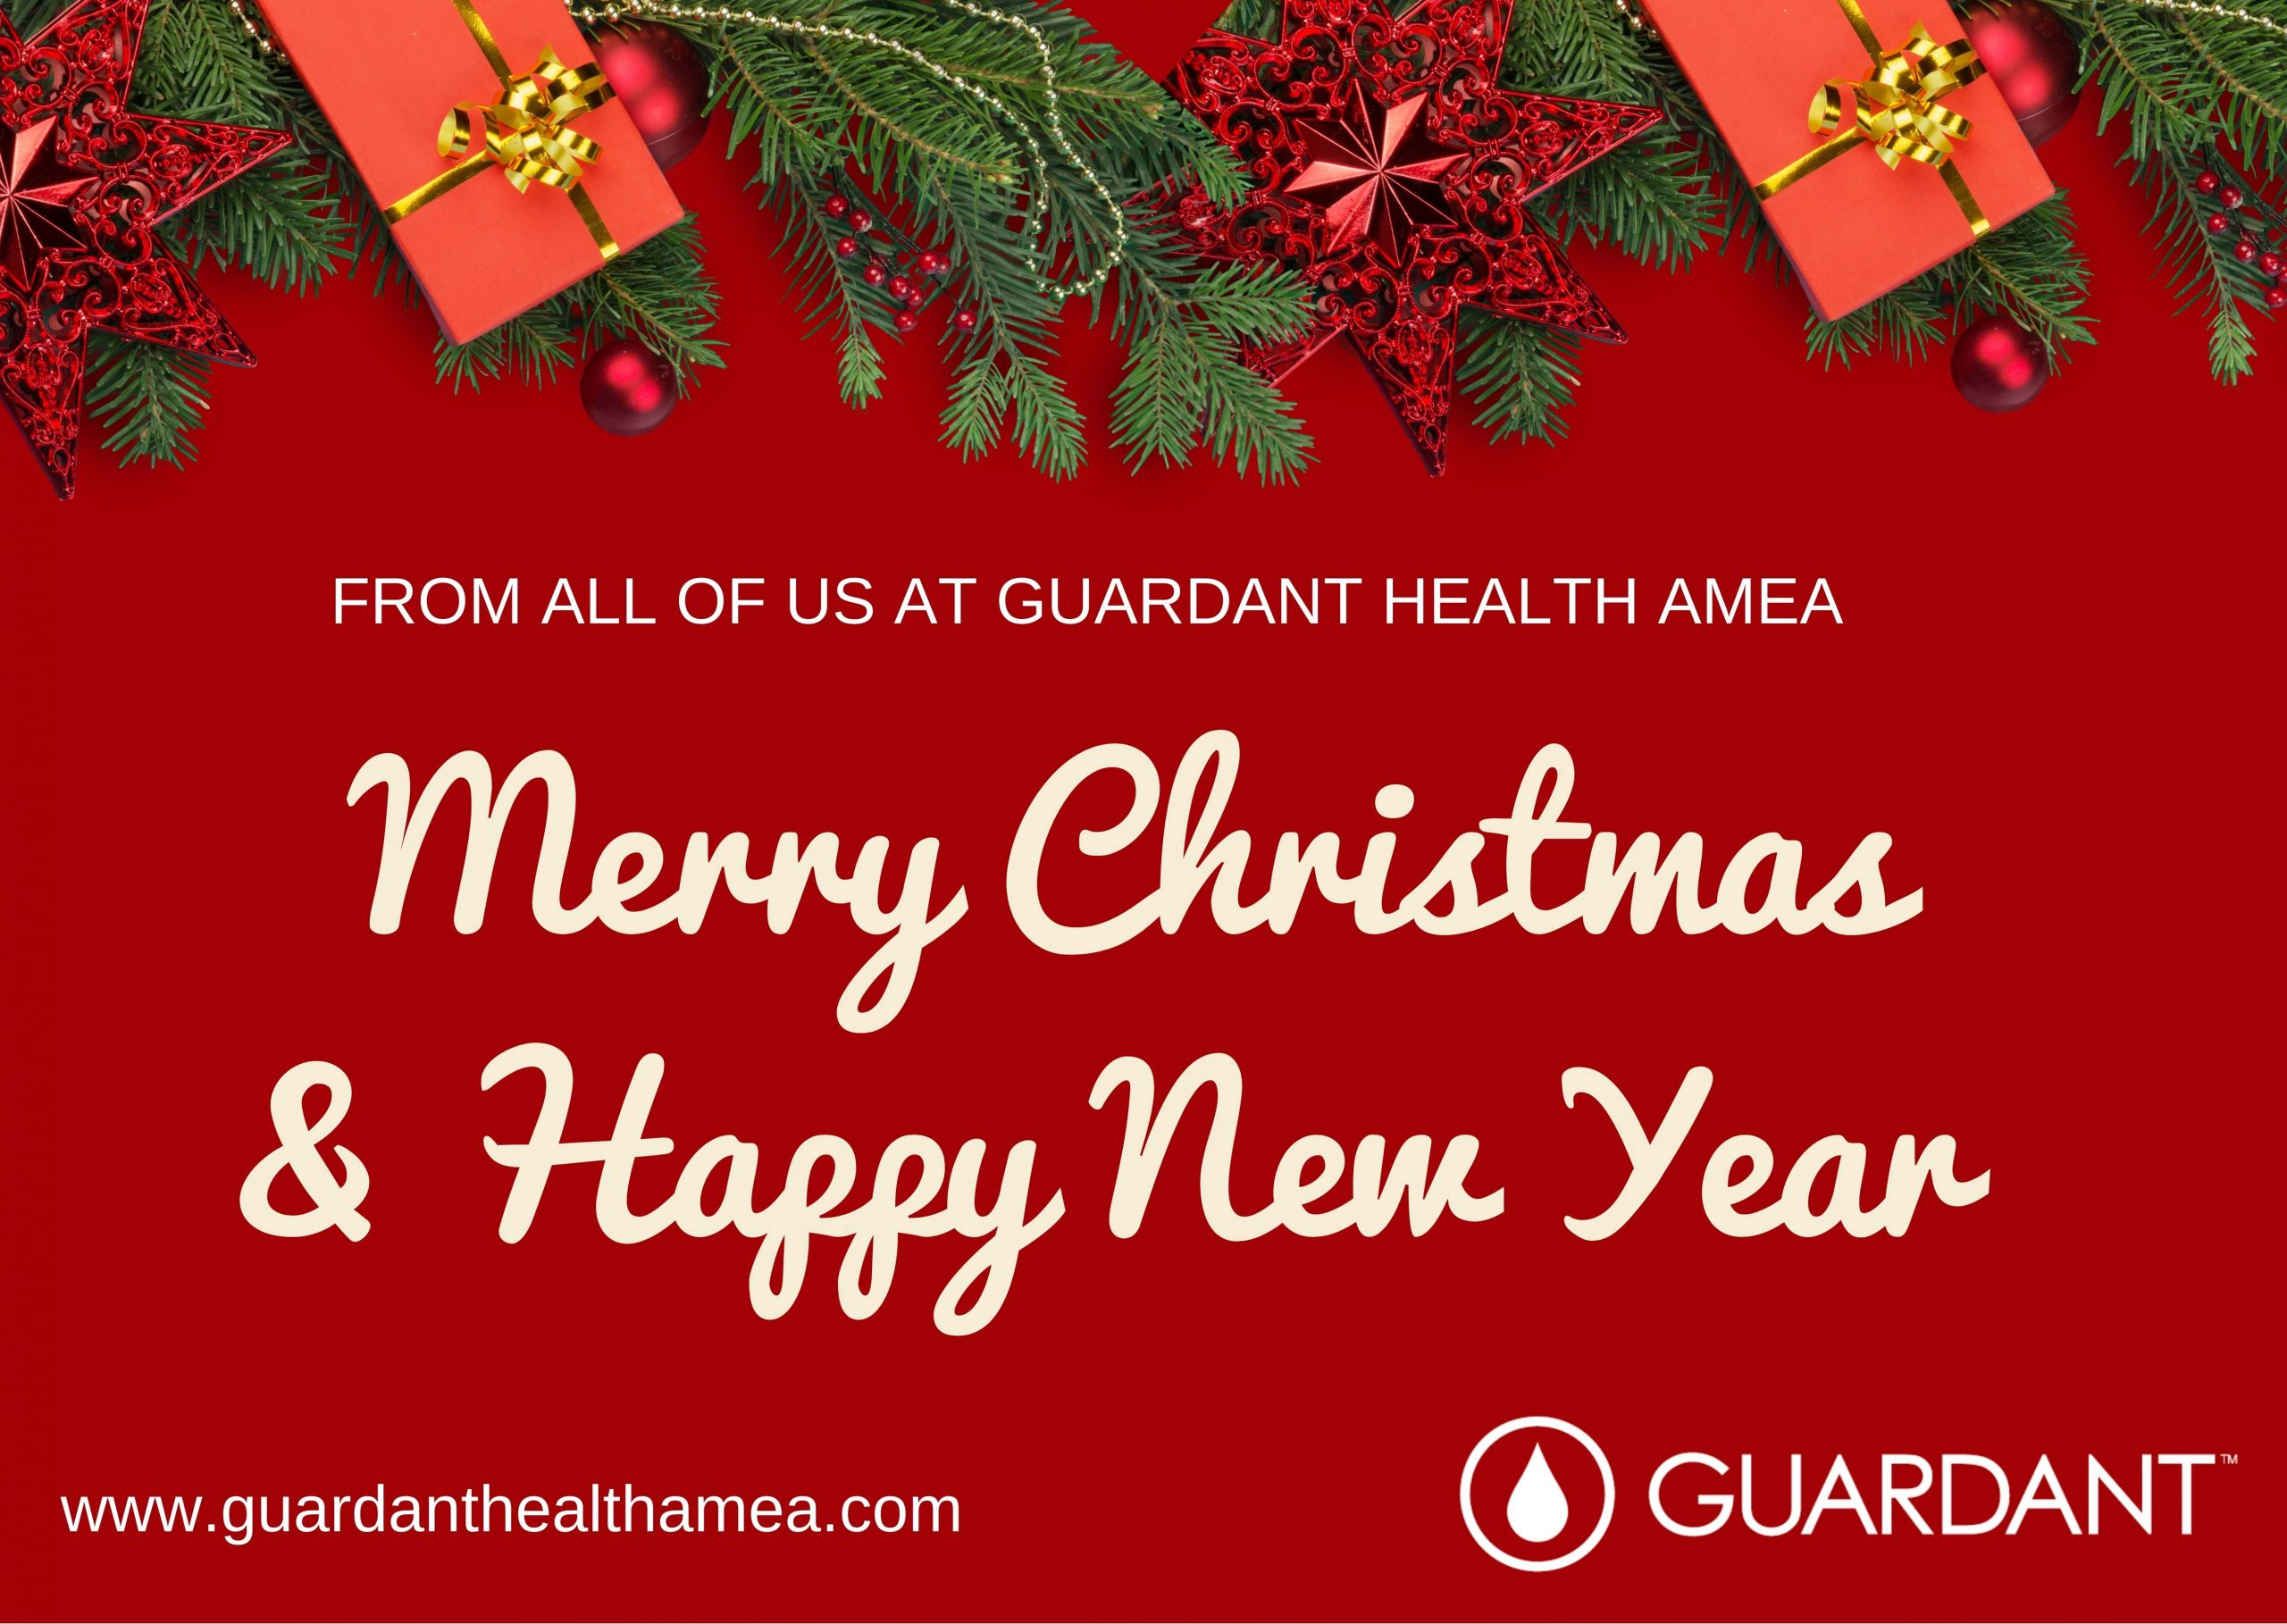 Merry Christmas and Happy New Year! – from all of us at guardanthealthamea.com